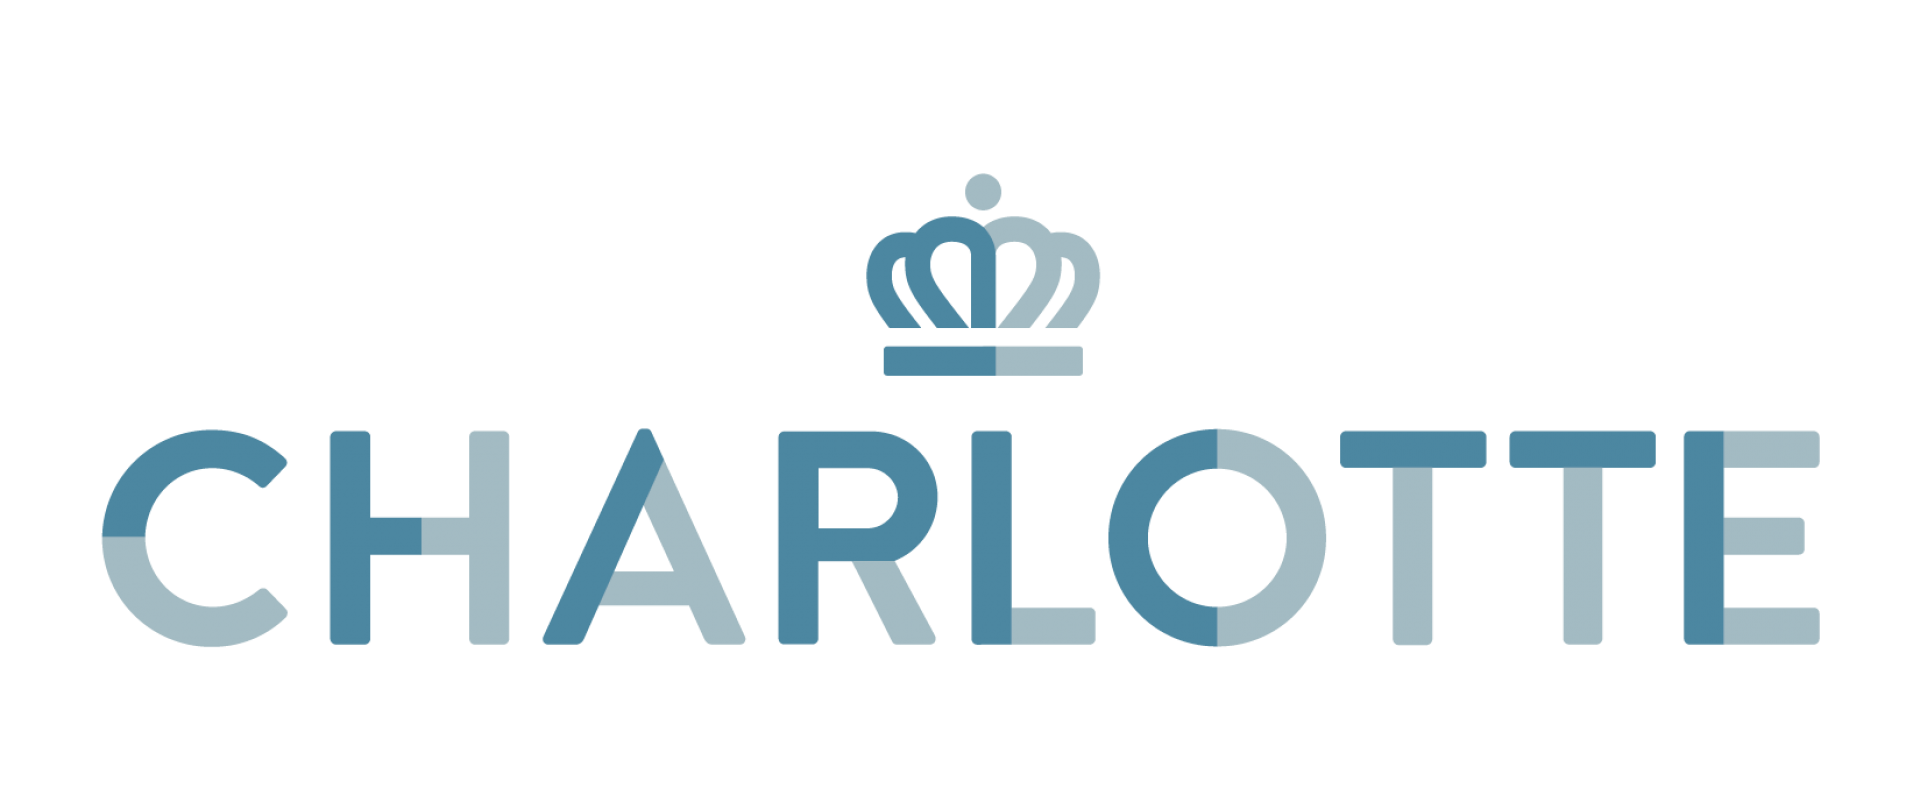 Charlotte-logo-BLUE-01-updated.png